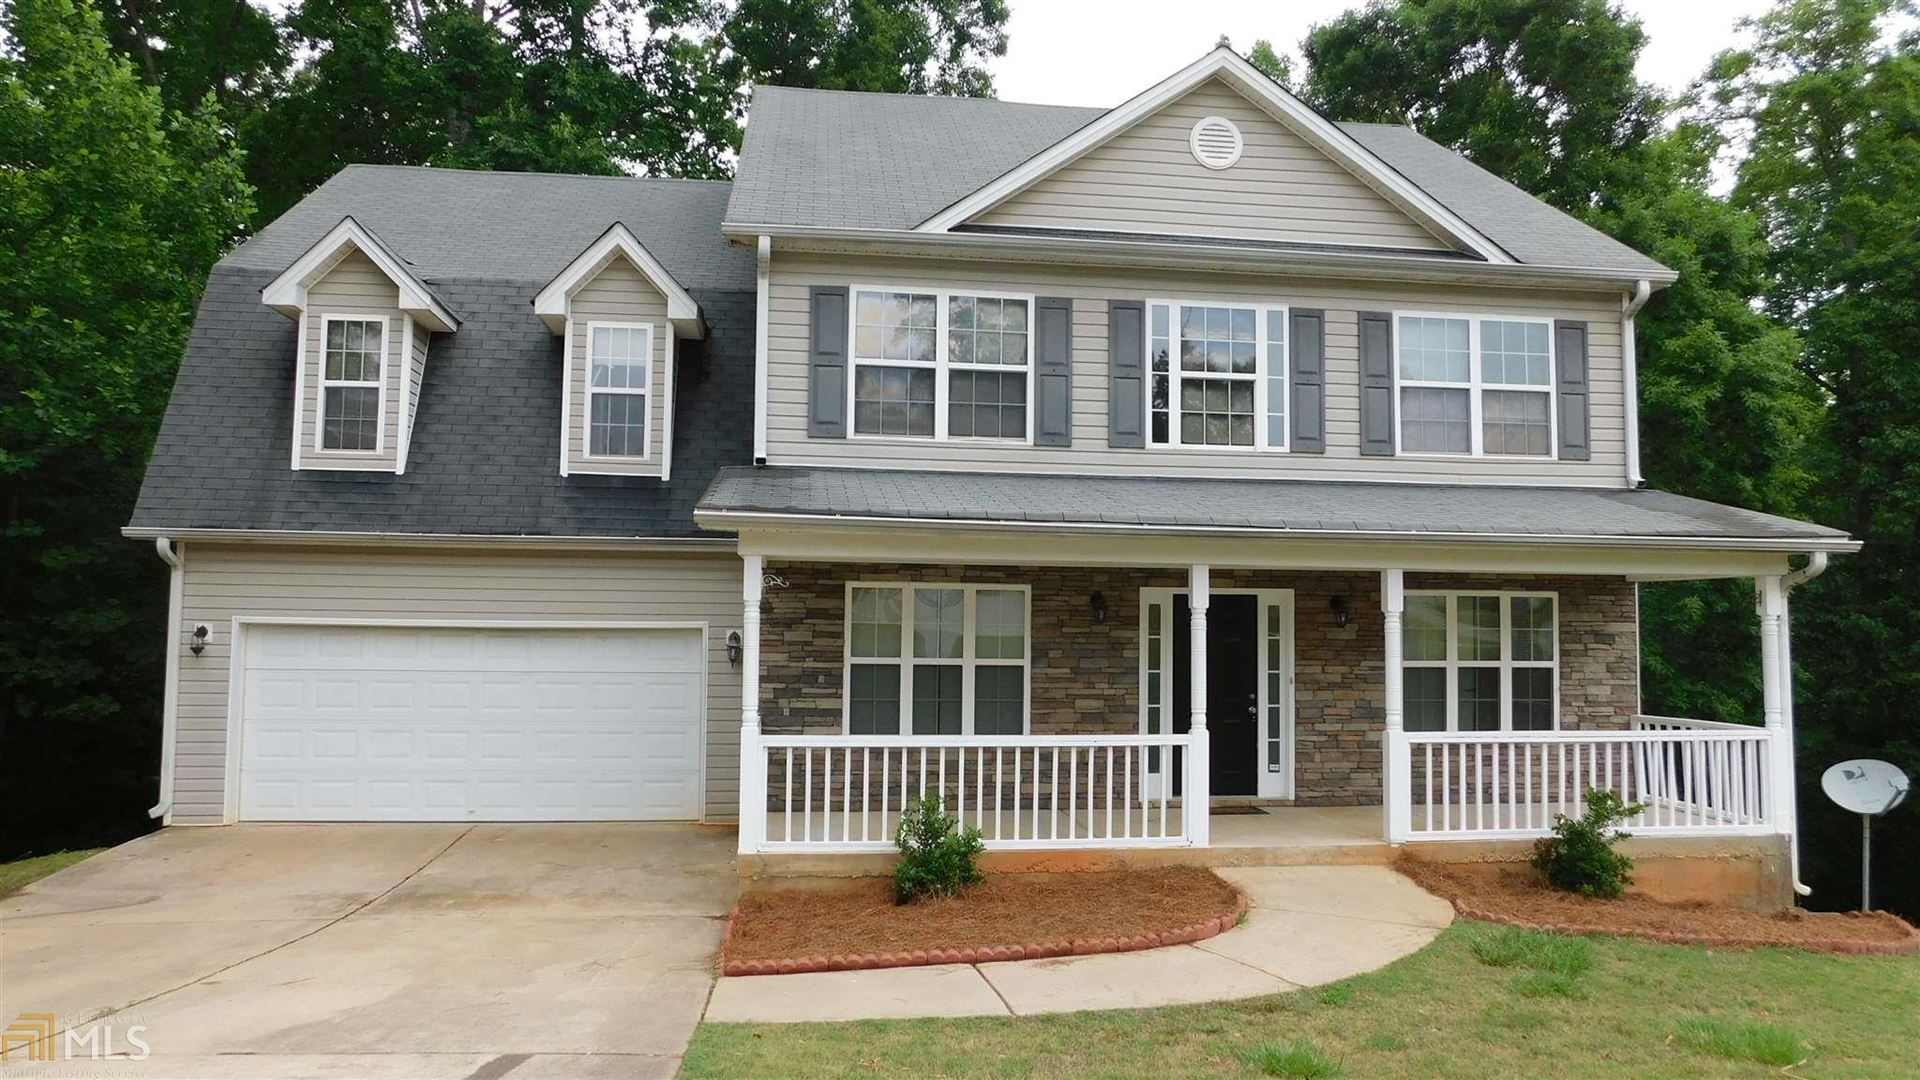 25 Havenwood Ln, Covington, GA 30016 - #: 8794389